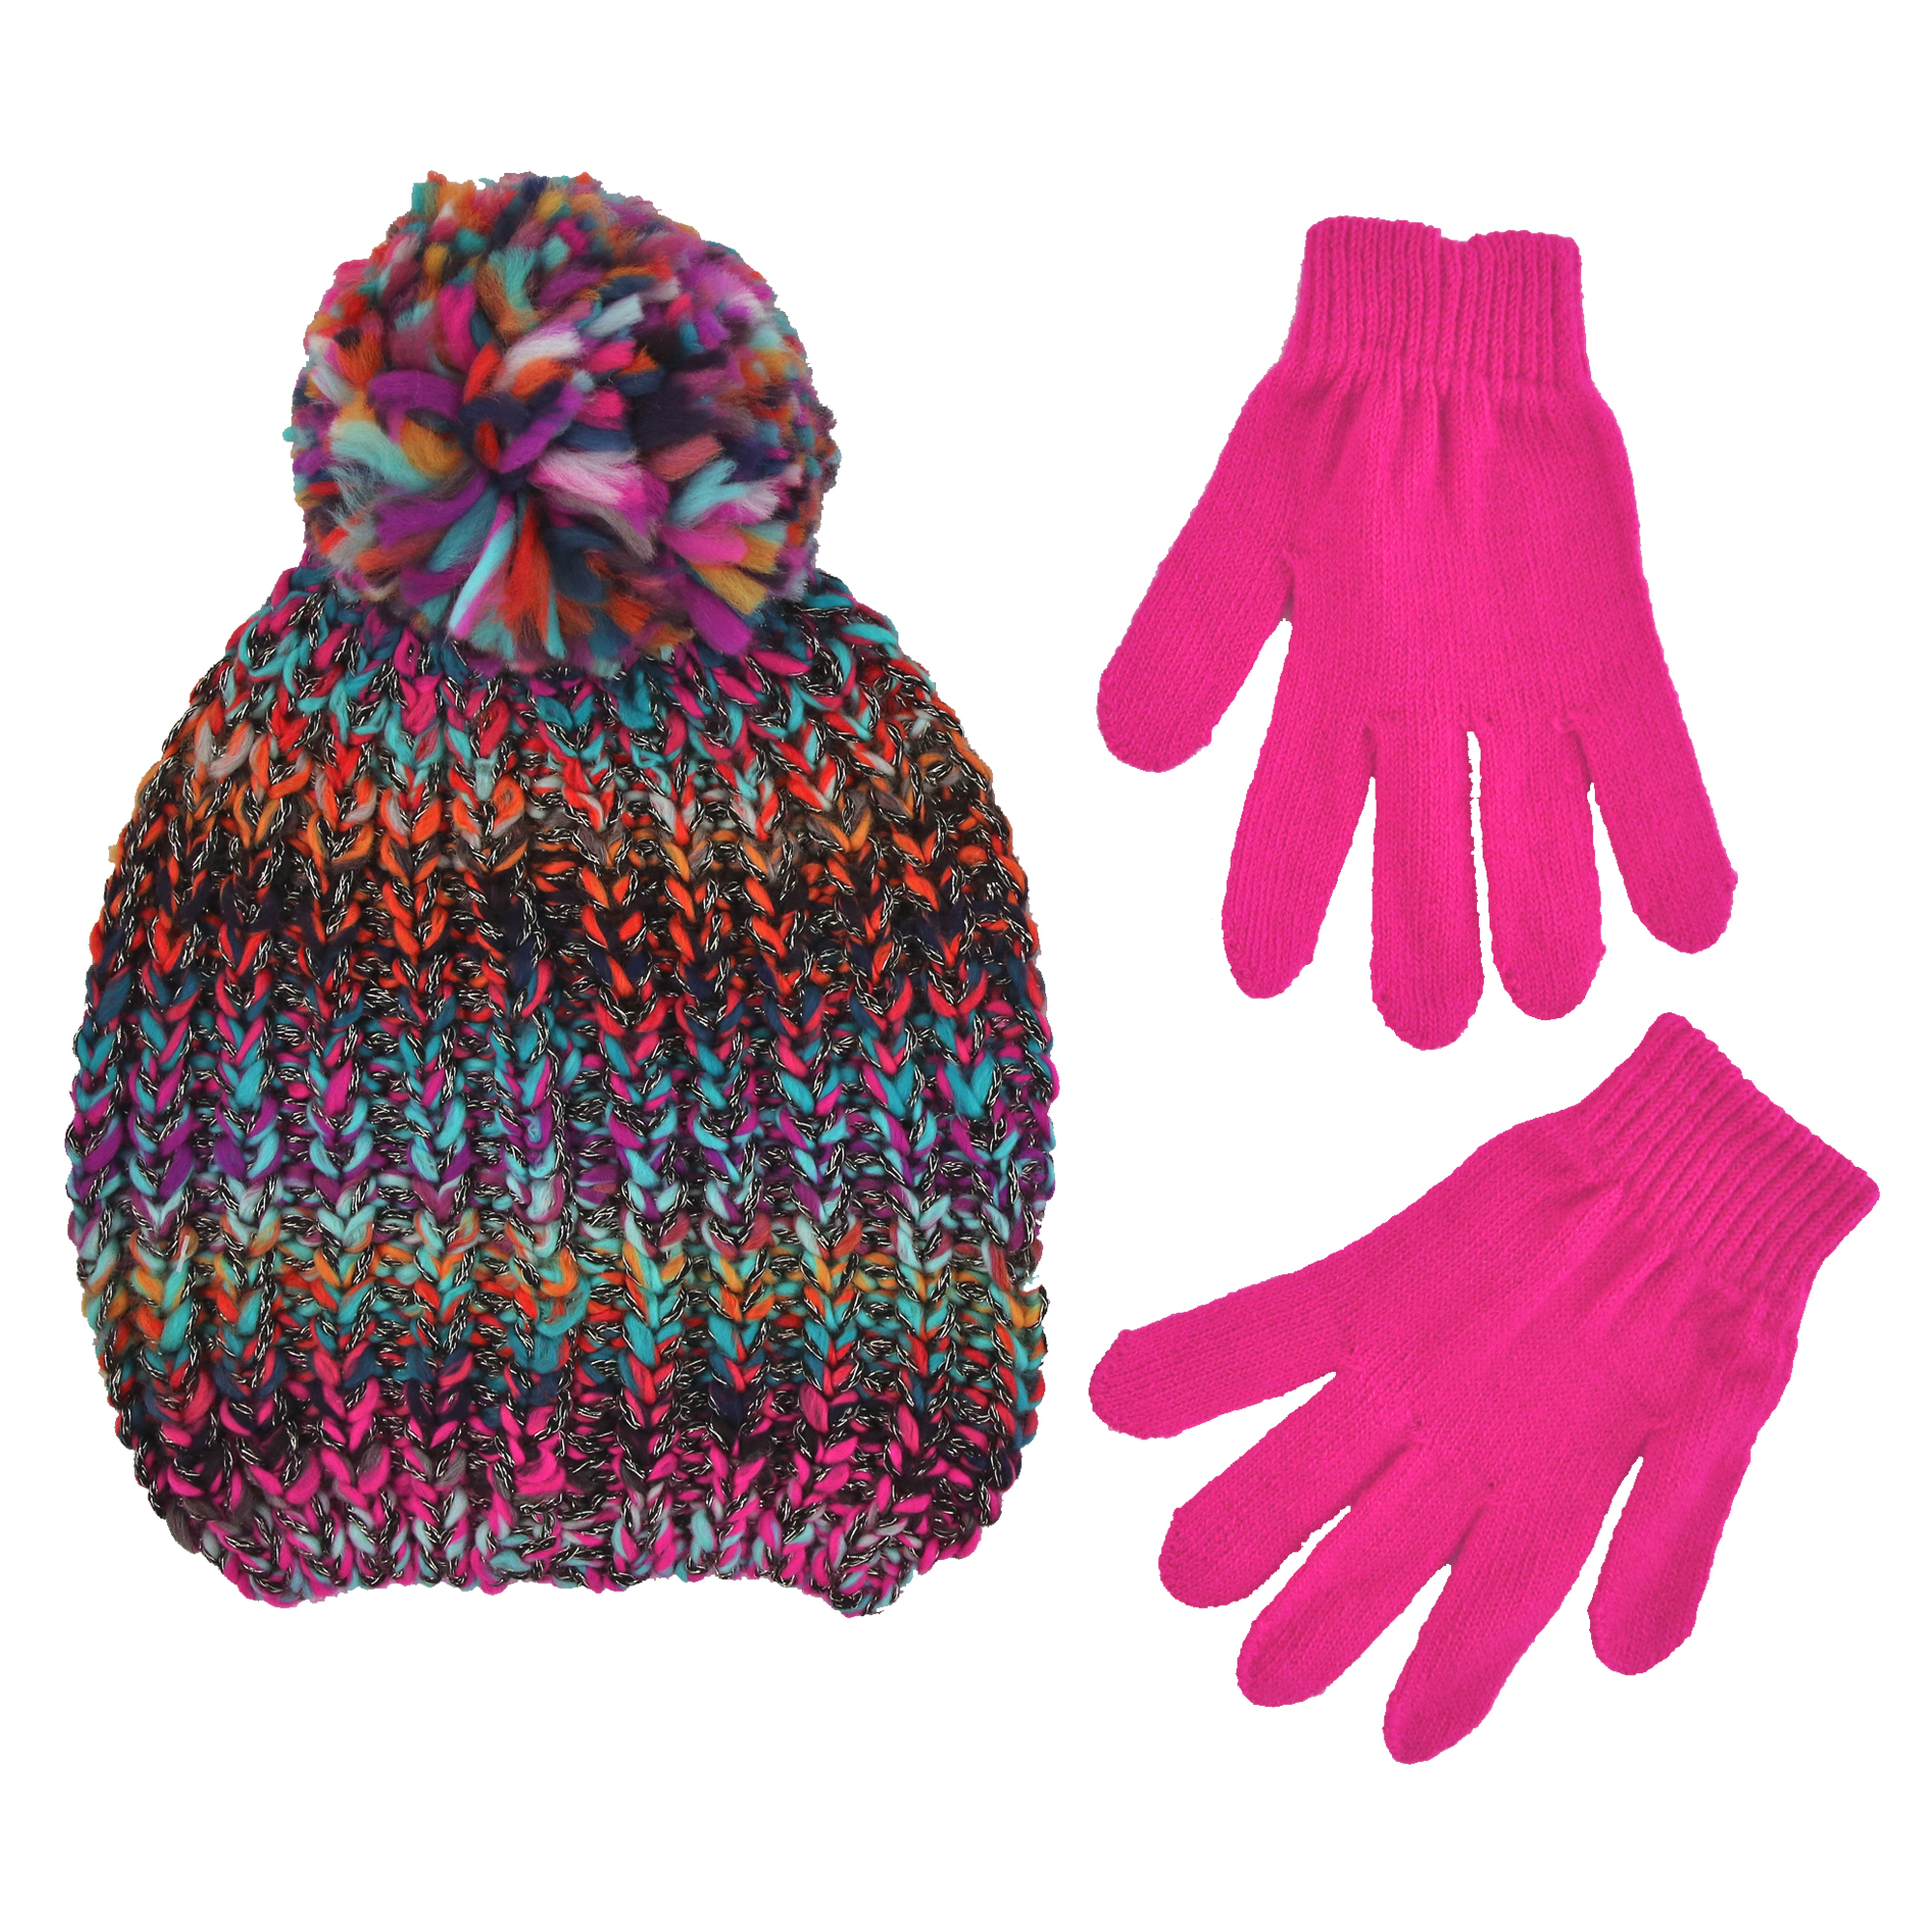 Winter Beanie Hat and Gloves Cold Weather Set, Little Girls, Age 4-7